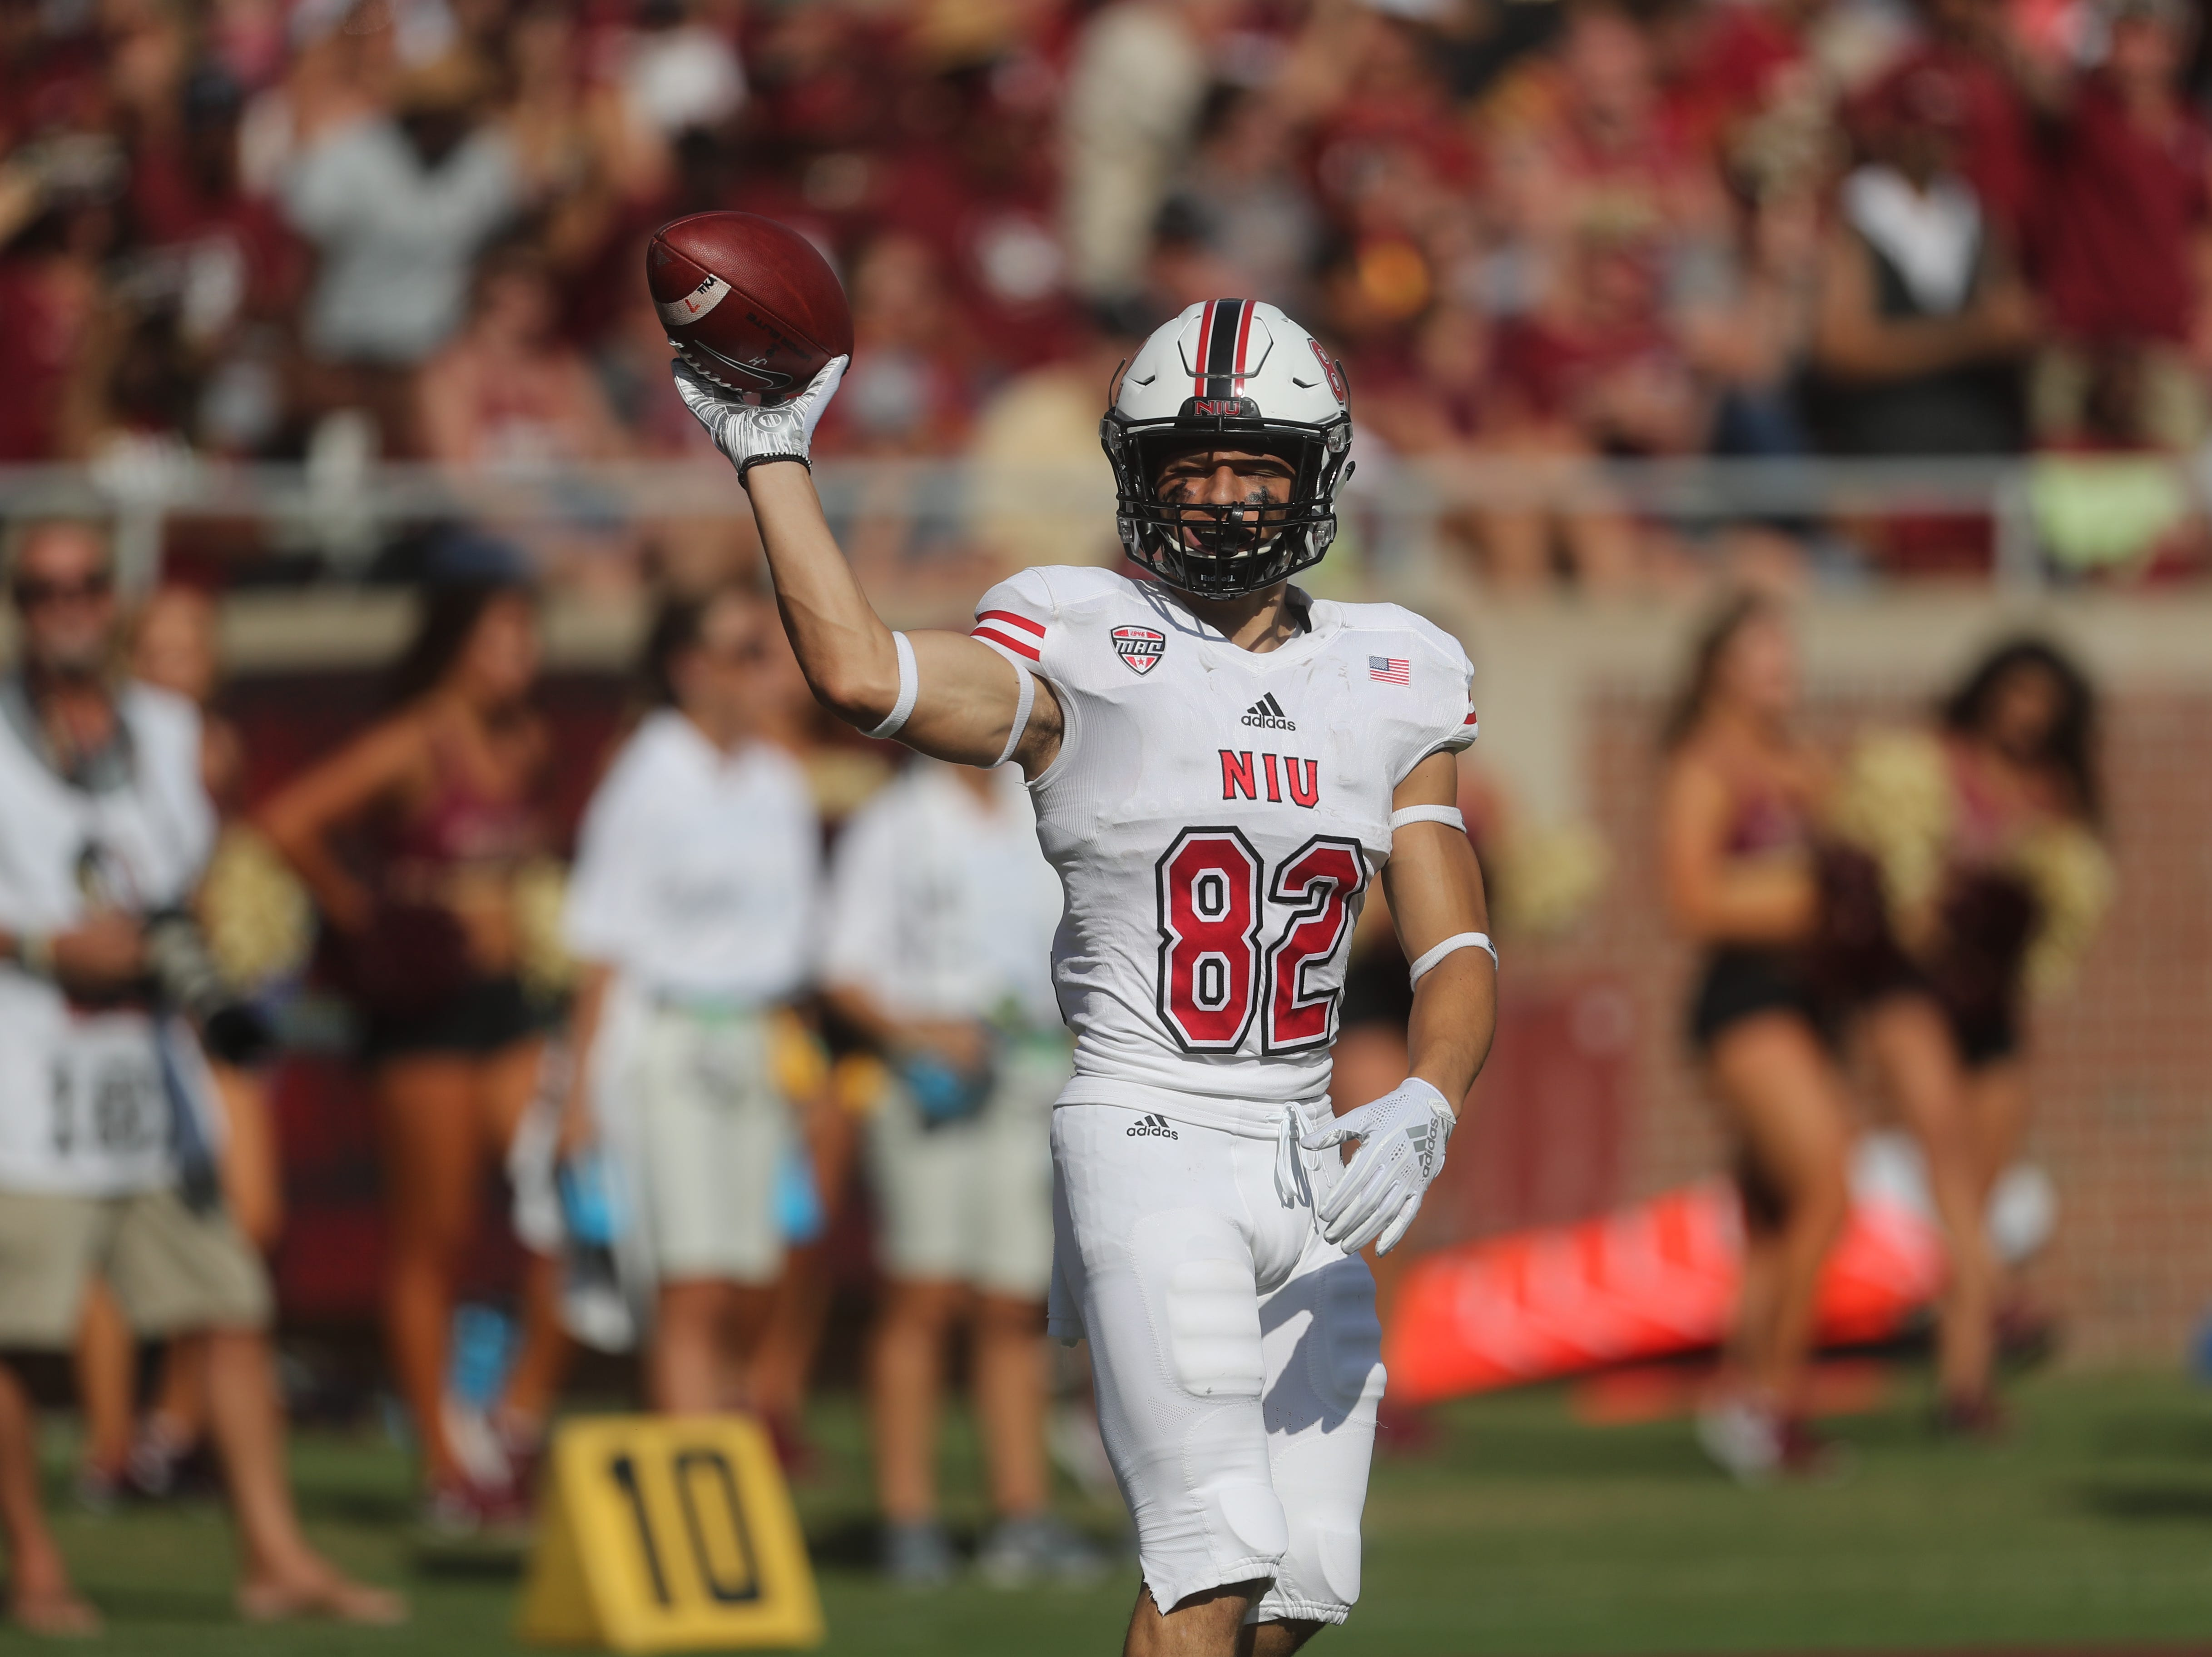 Northern Illinois Huskies wide receiver Fotis Kokosioulis (82) during a game between the Florida State University Seminoles and the Northern Illinois University Huskies at Doak S. Campbell Stadium in Tallahassee, Fla. Saturday, September 22, 2018.